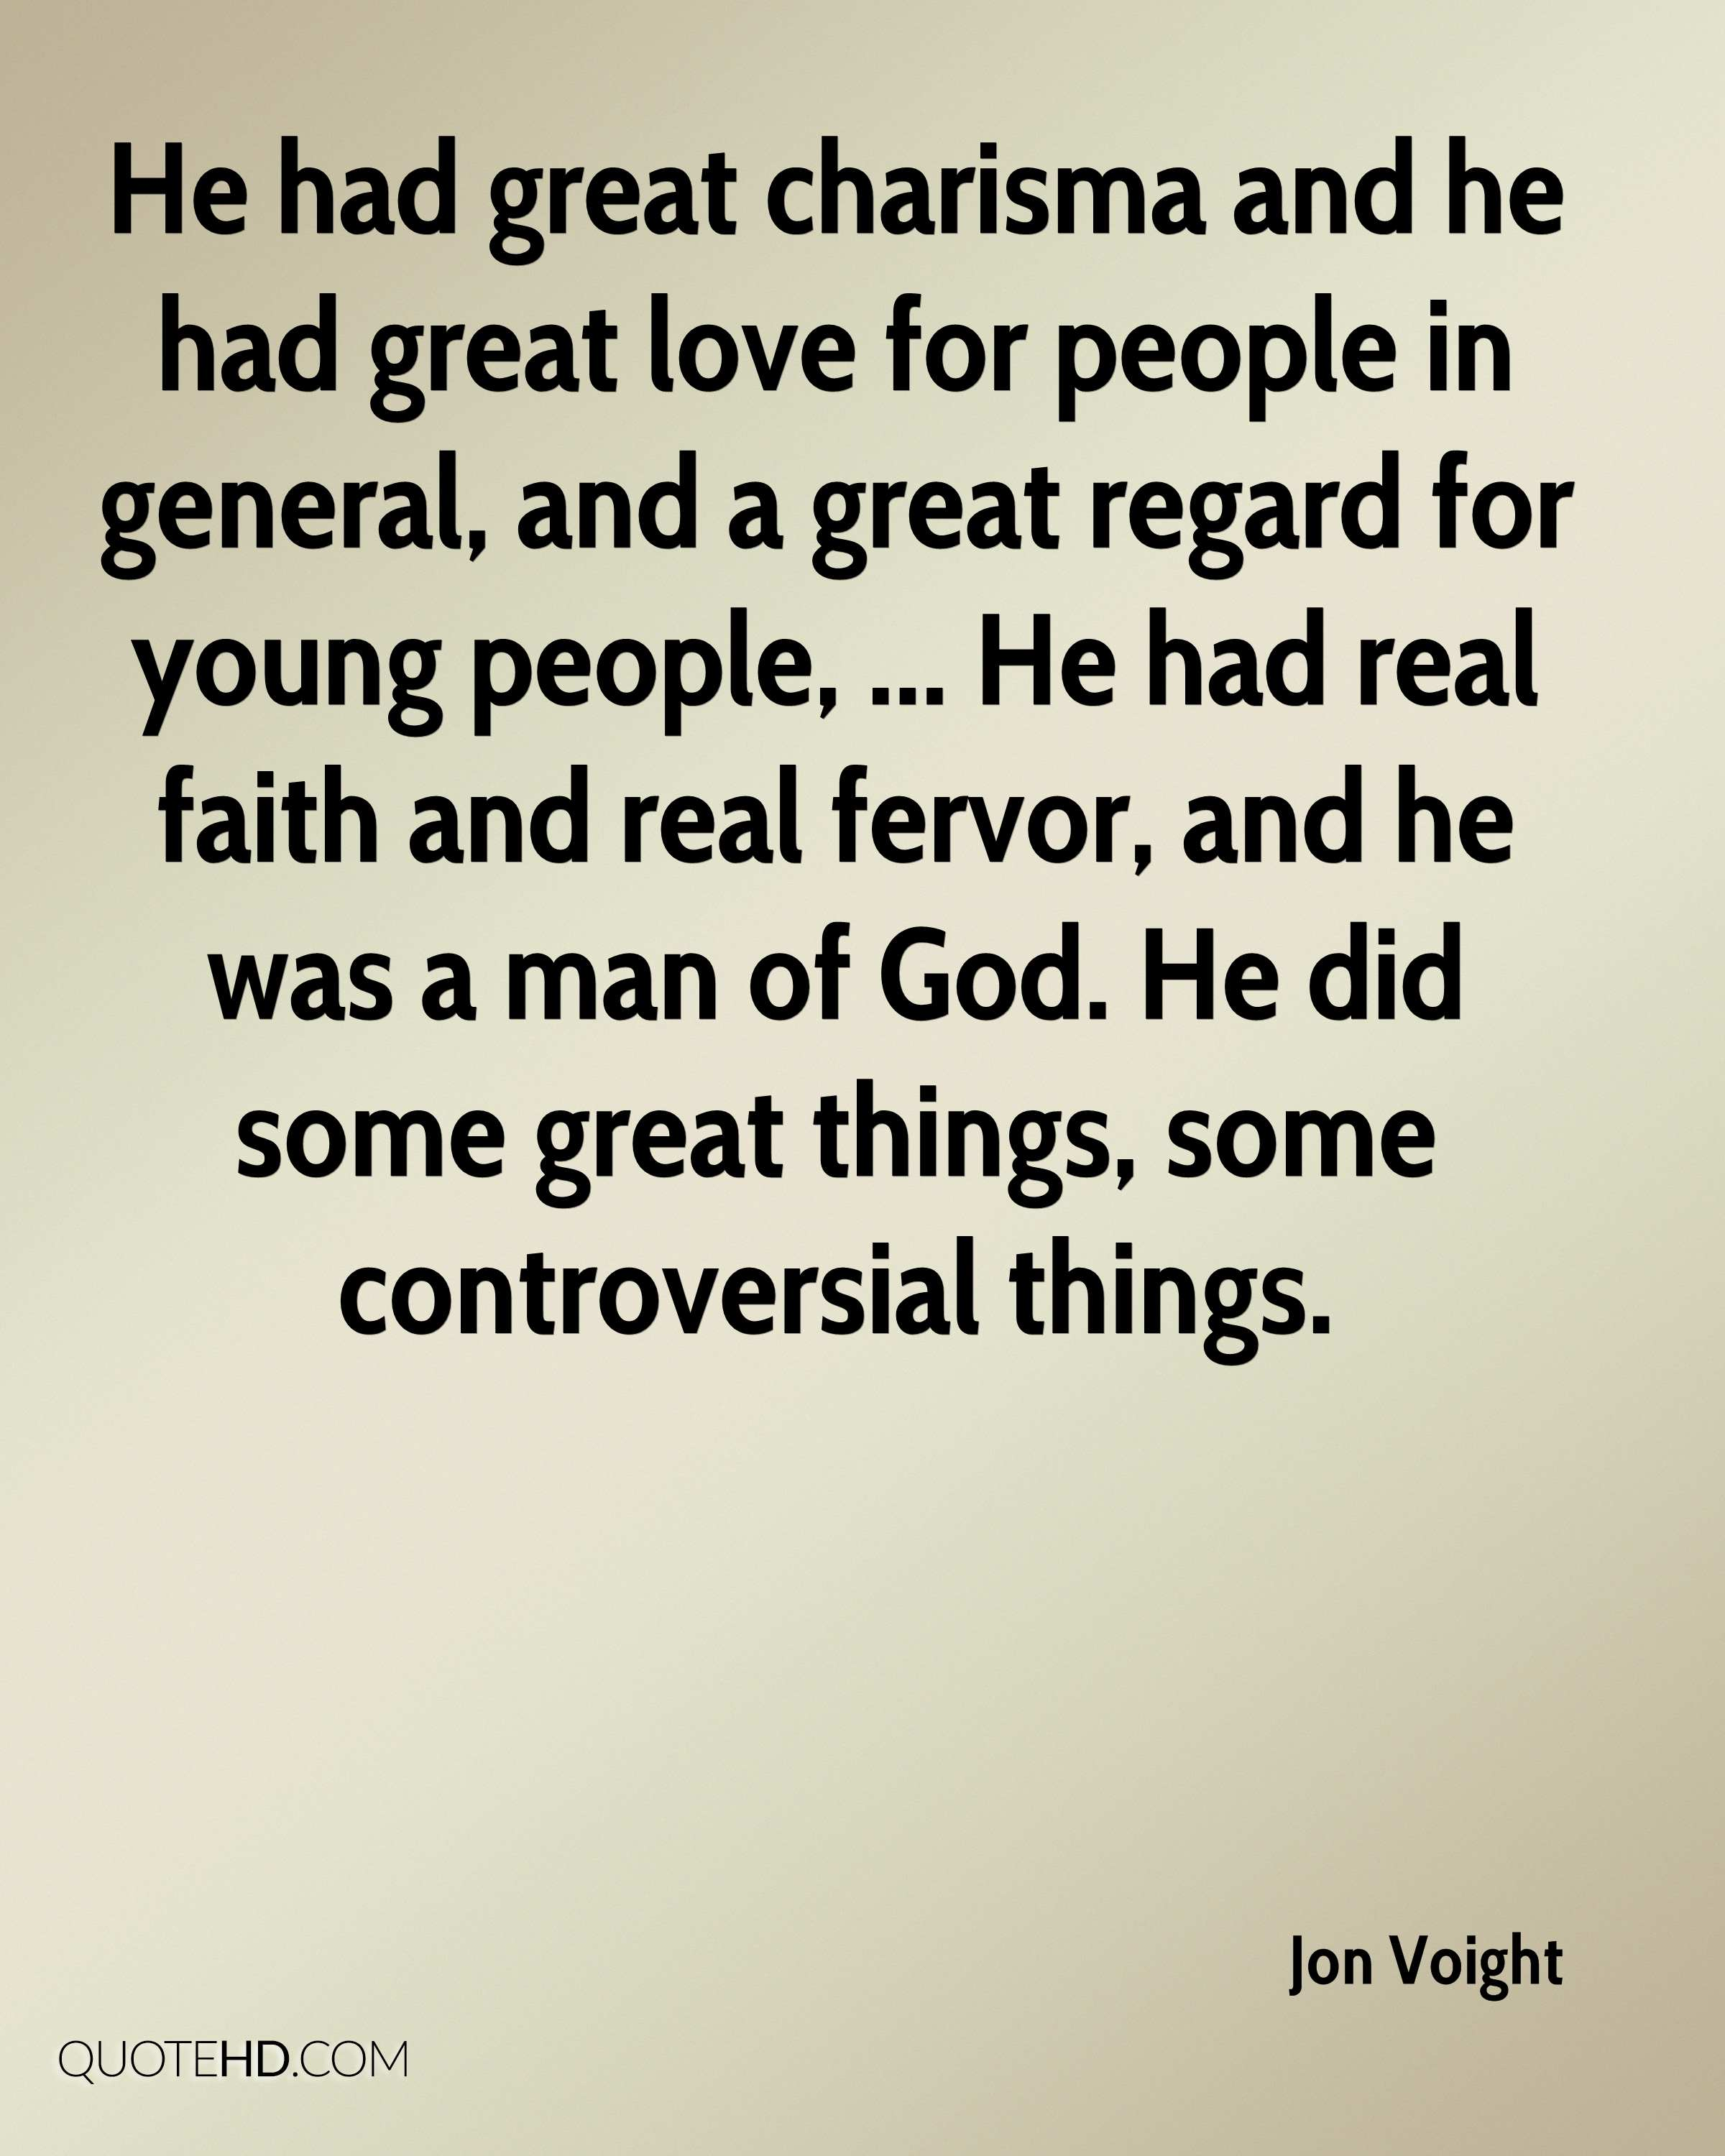 He had great charisma and he had great love for people in general, and a great regard for young people, ... He had real faith and real fervor, and he was a man of God. He did some great things, some controversial things.